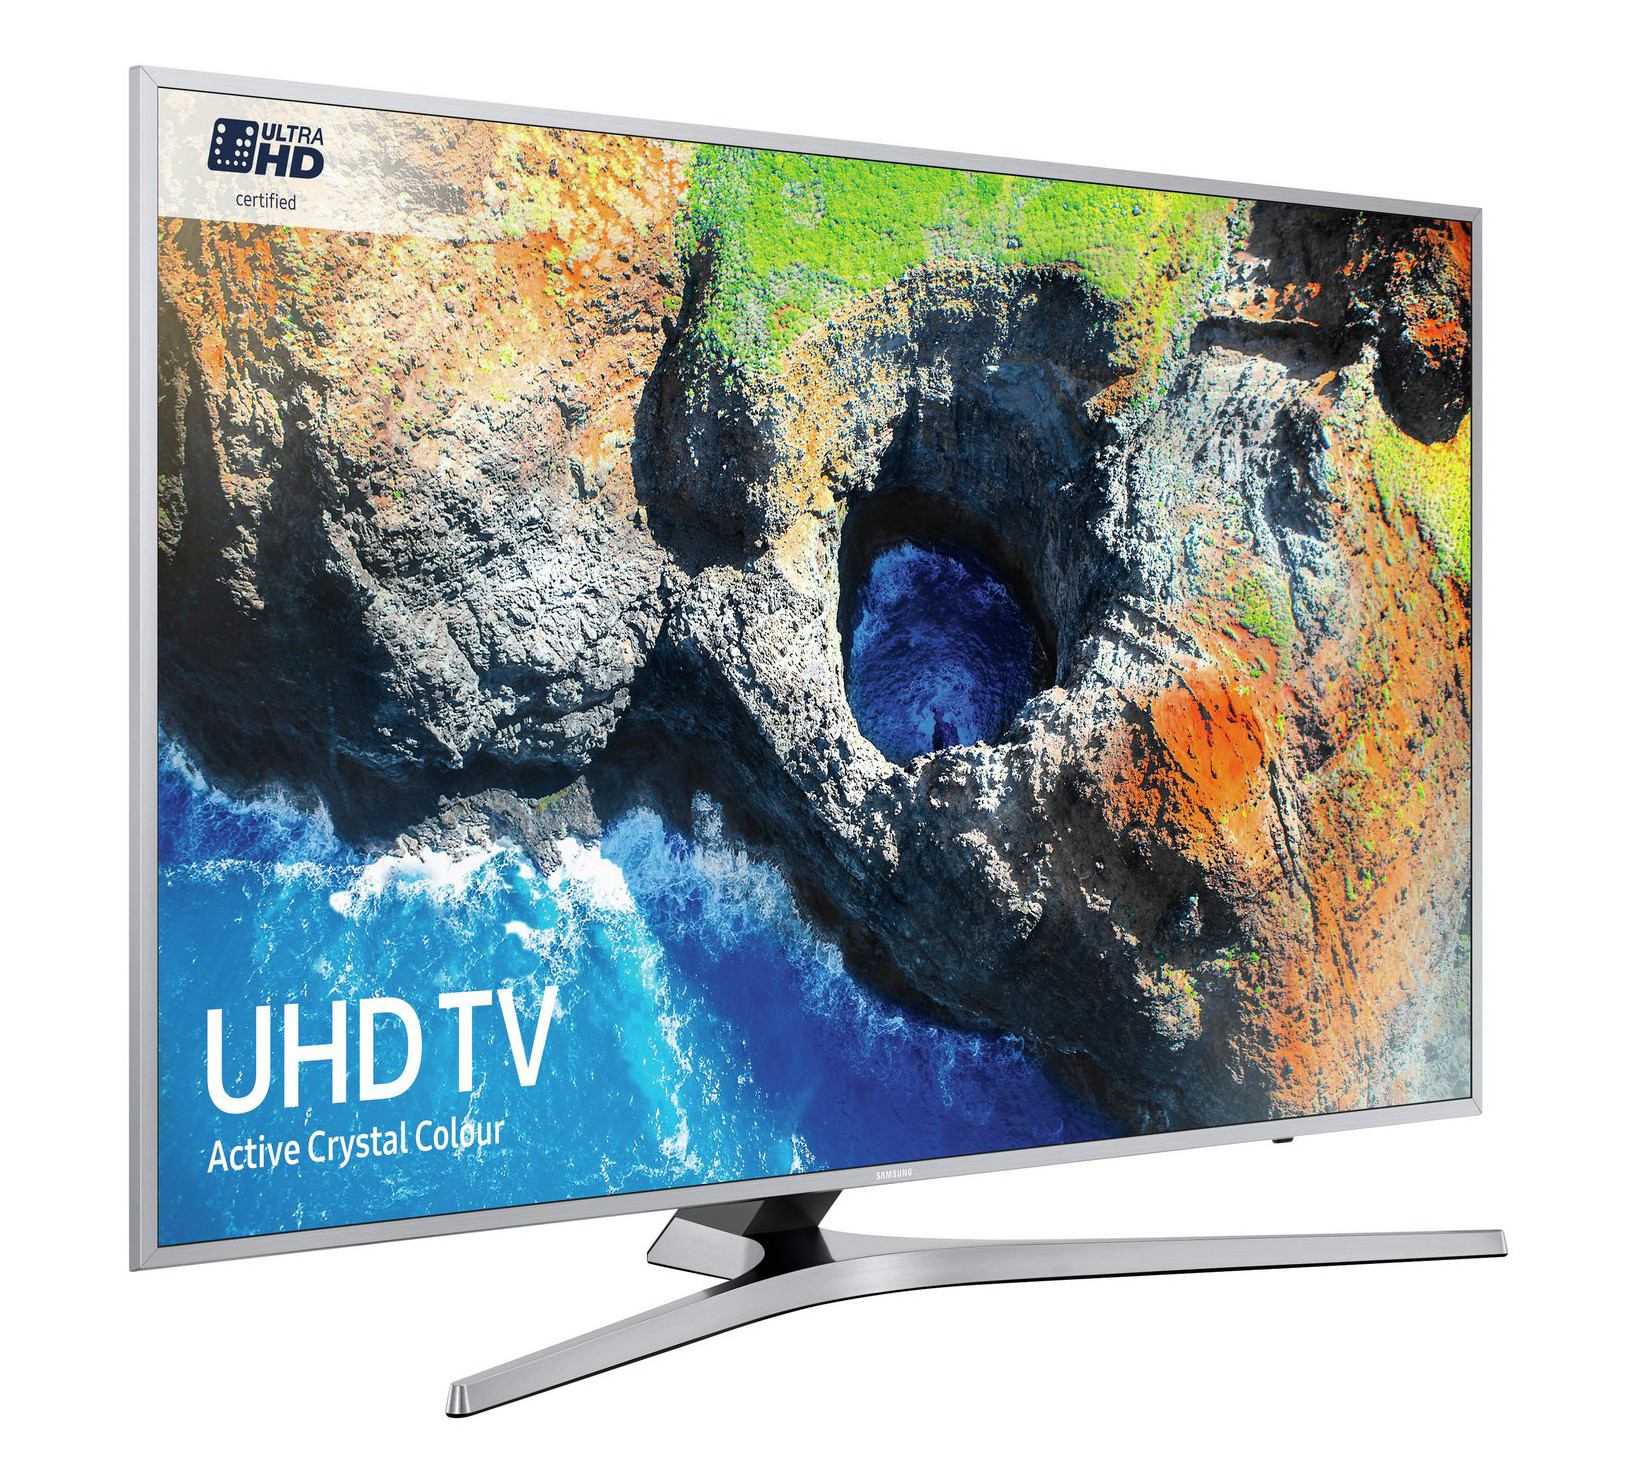 ede0c4a42 Samsung 40MU6400 40 Inch 4K UHD Smart TV with HDR